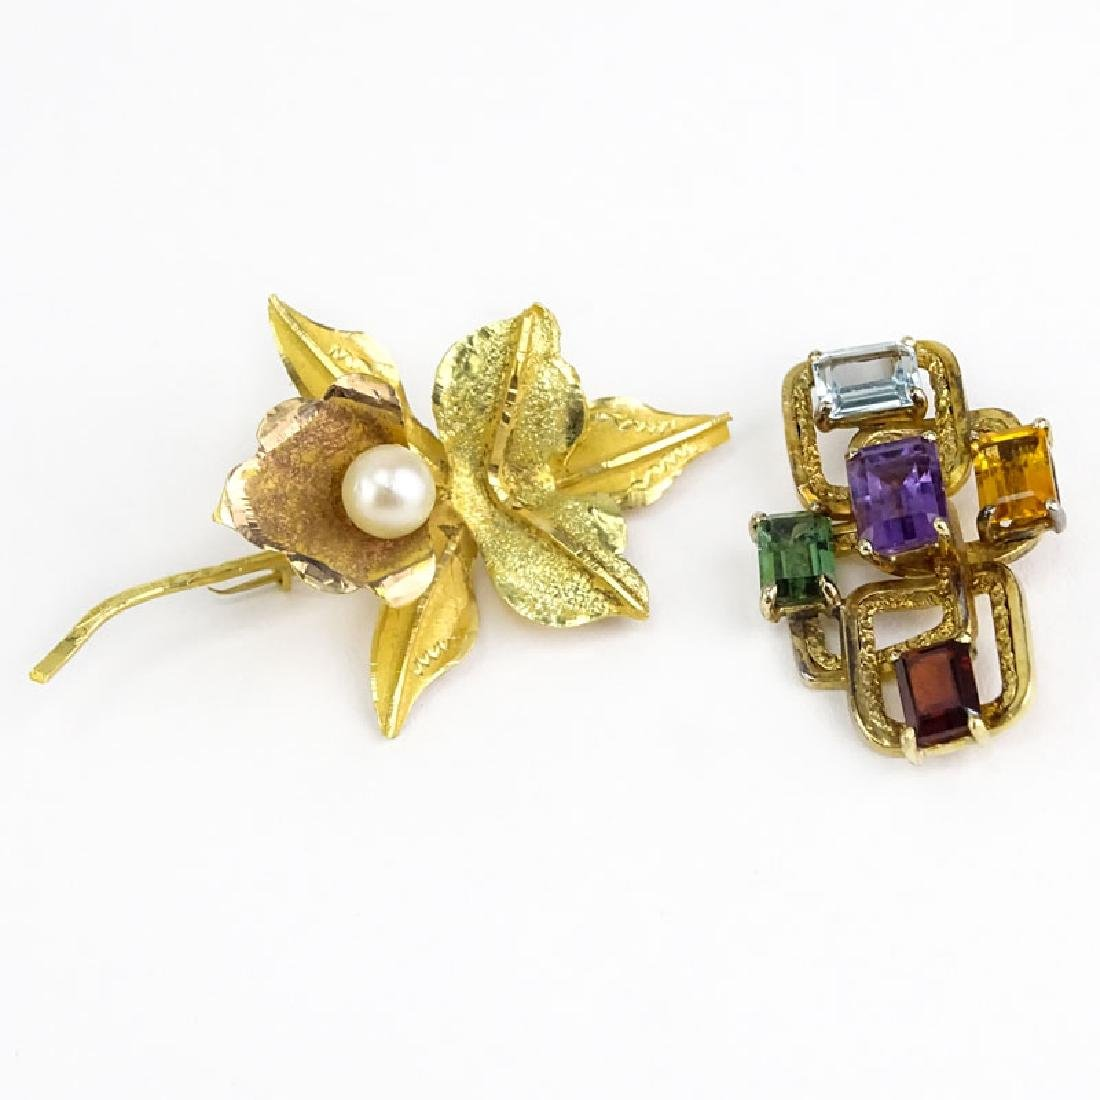 Vintage 18 Karat Yellow Gold and Pearl Flower Brooch